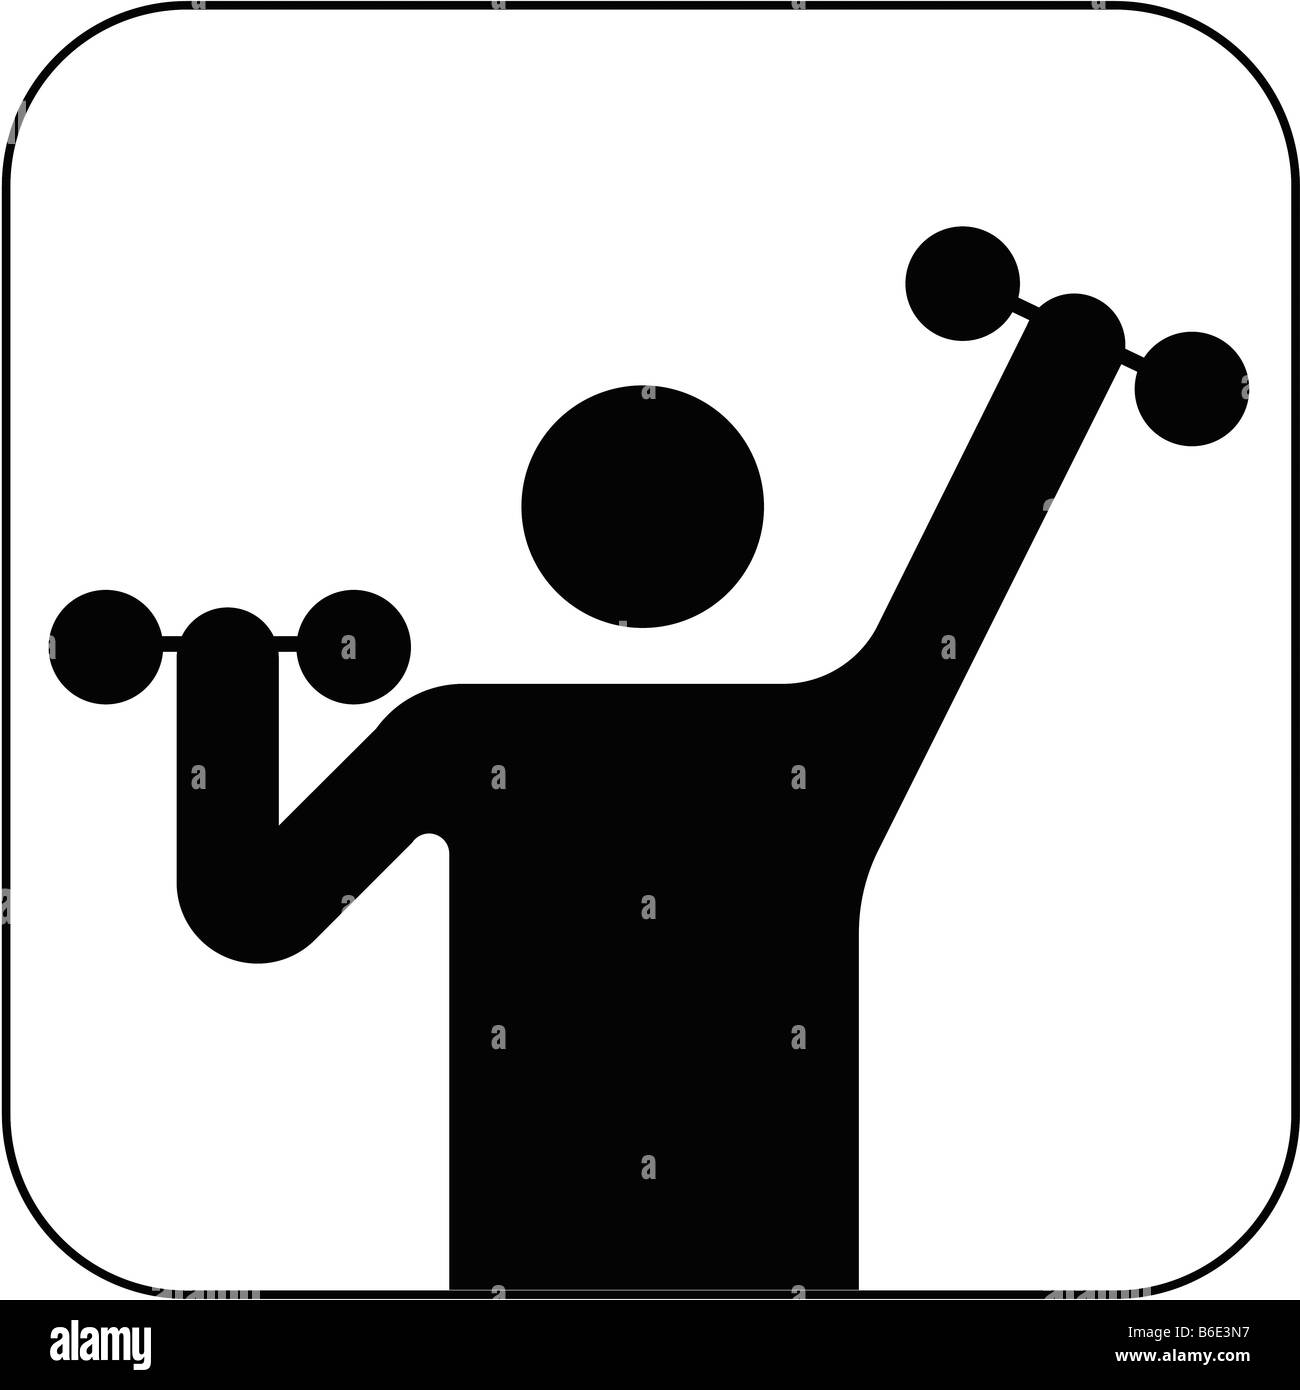 Physiotherapy Symbol Stock Photos Physiotherapy Symbol Stock